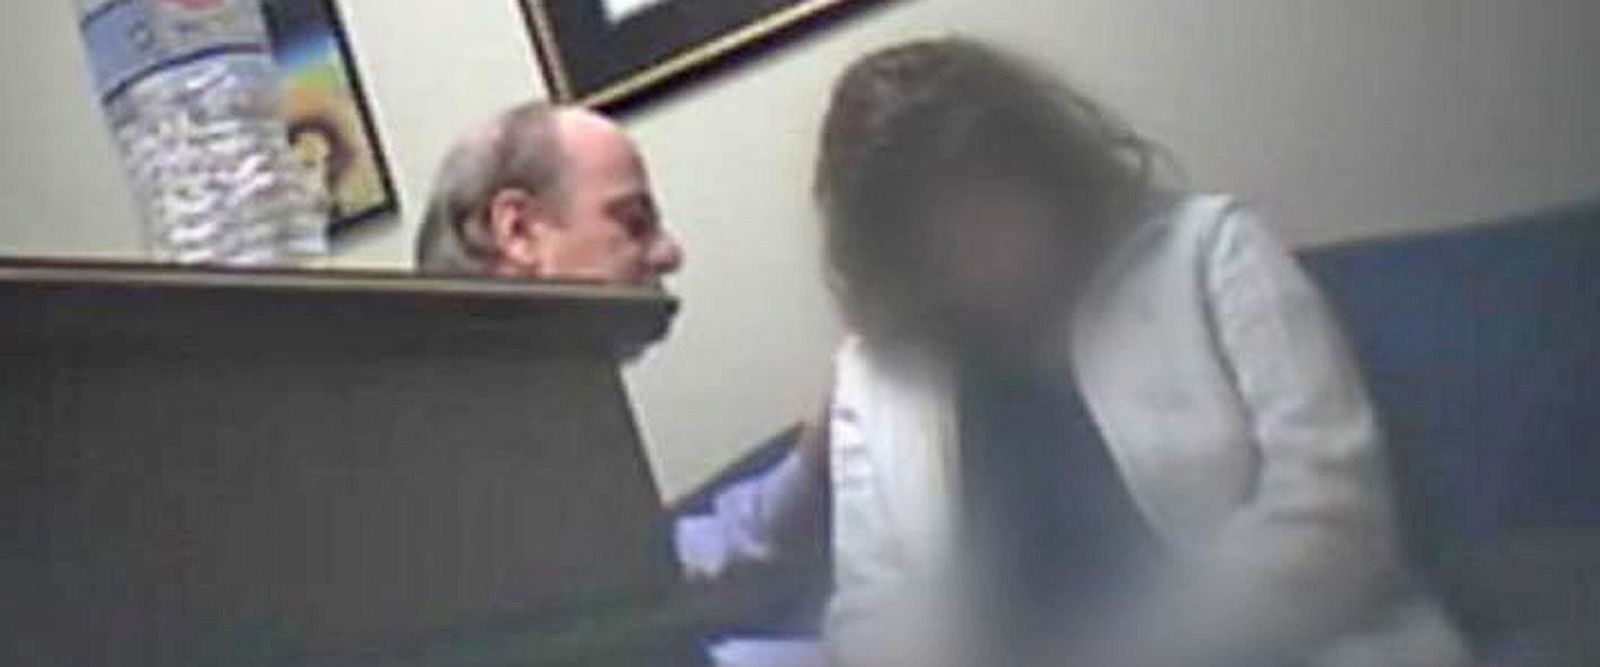 VIDEO: Victim Speaks Out After Lawyer Convicted of Hypnotizing Clients